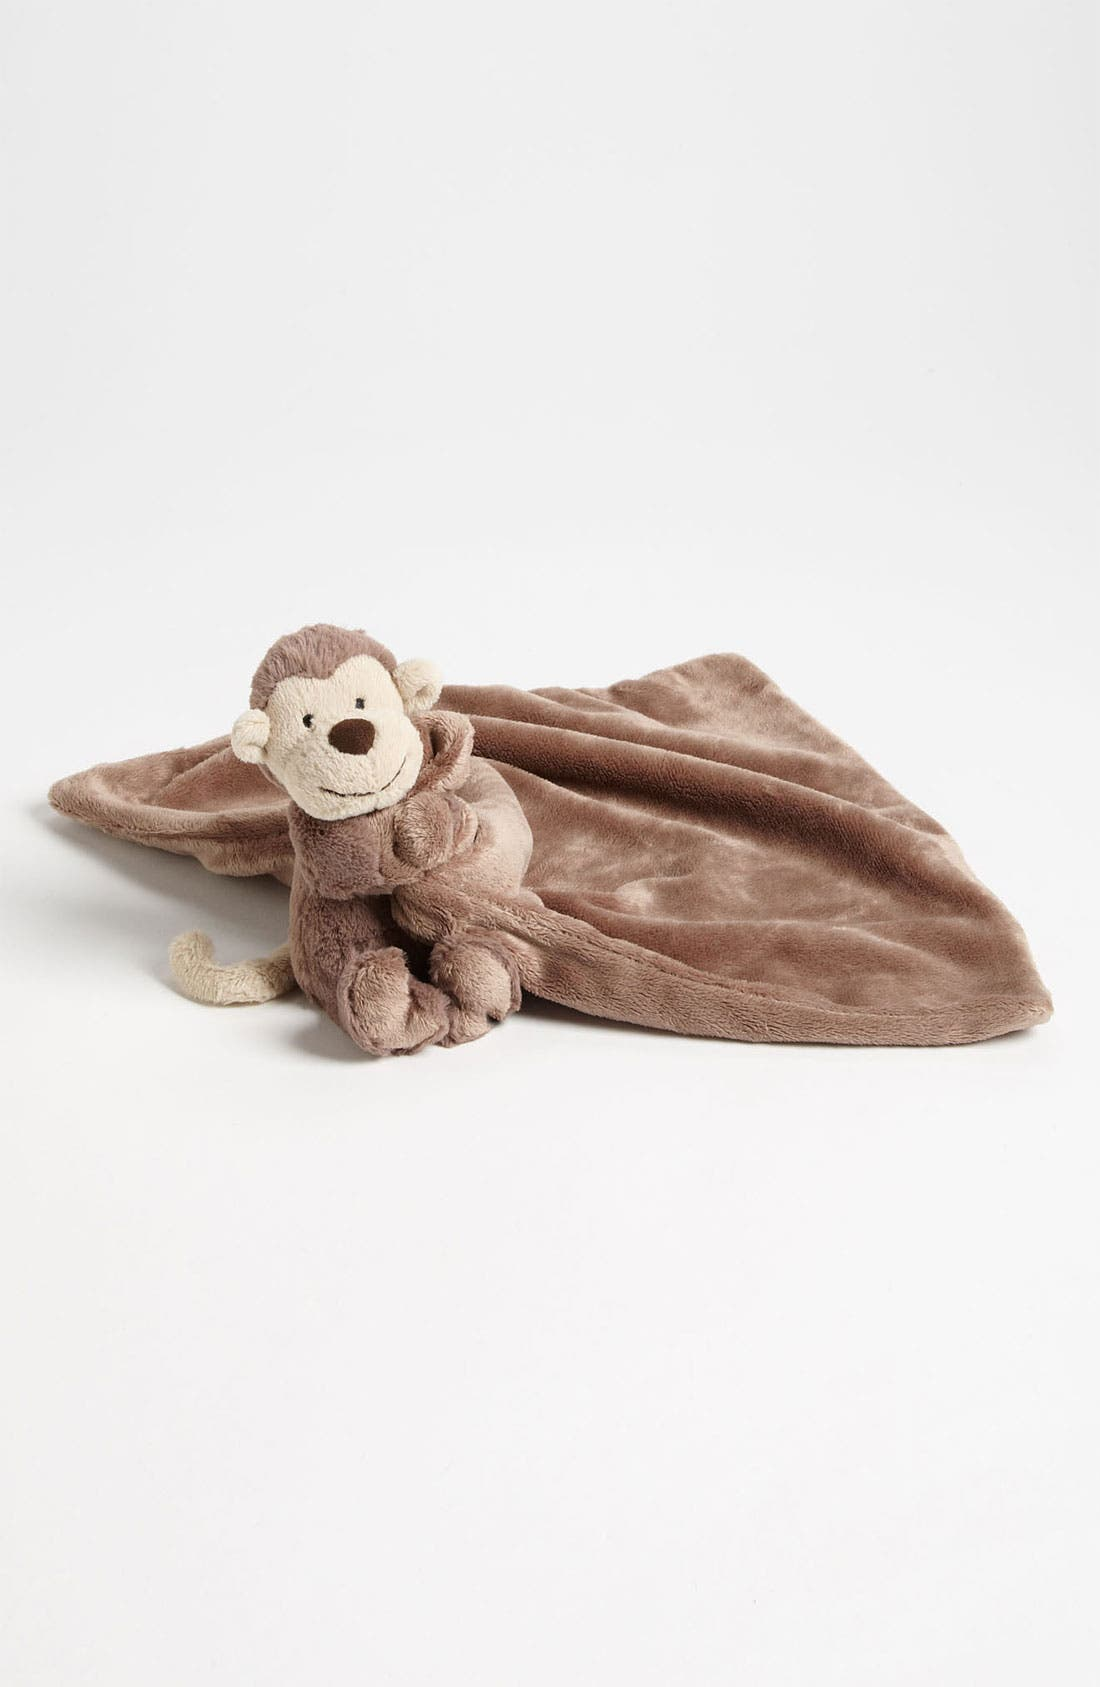 'Bashful Monkey Soother' Stuffed Animal & Blanket,                         Main,                         color, Brown